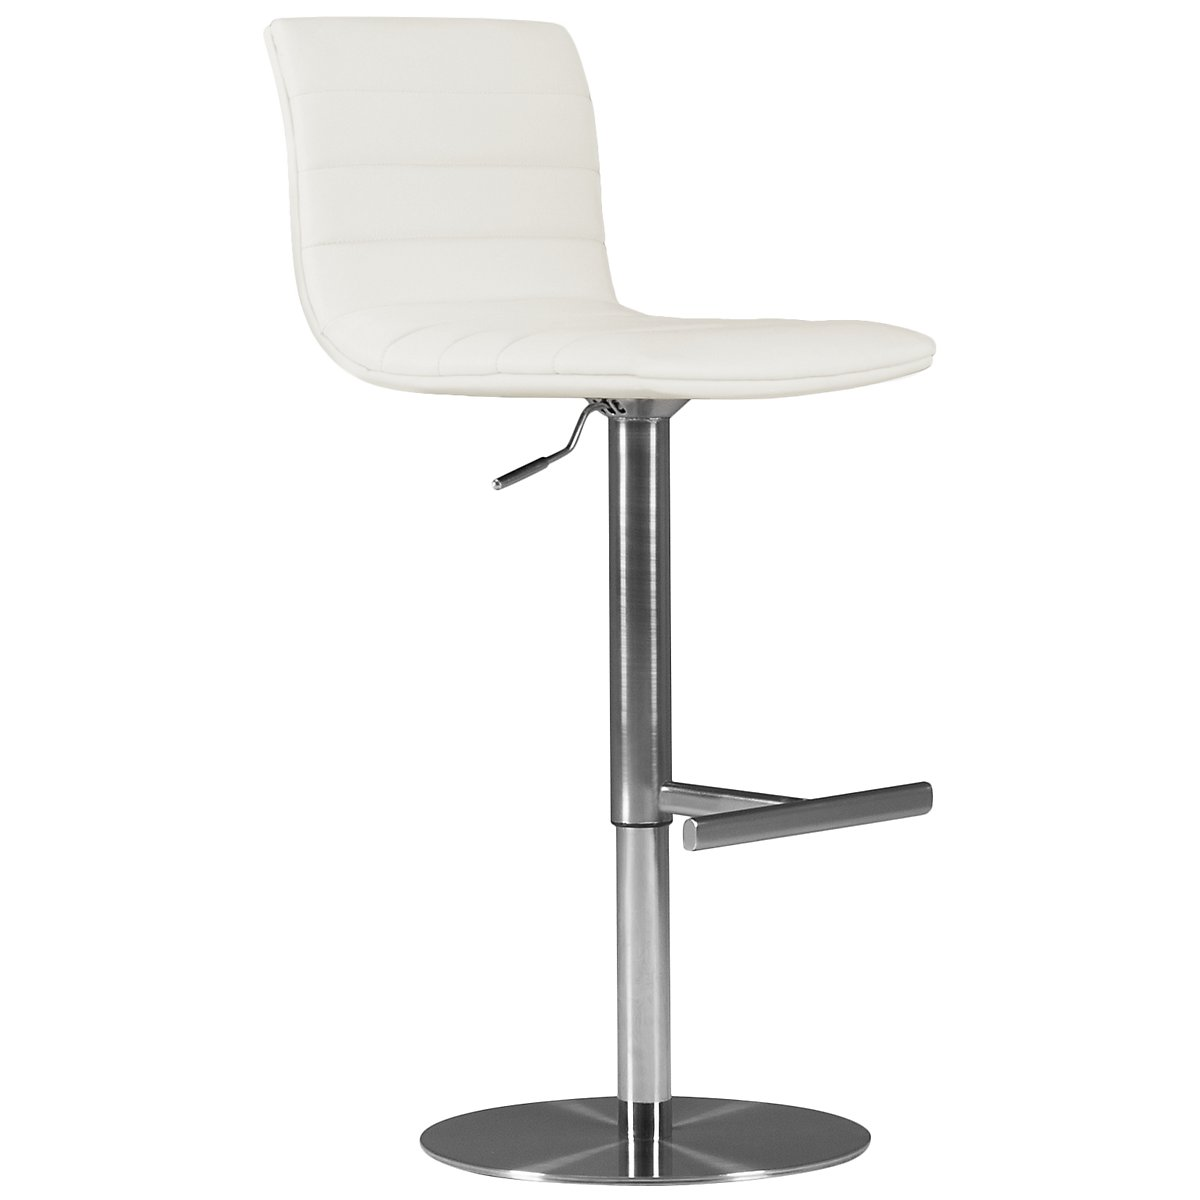 Ellis White Upholstered Adjustable Stool